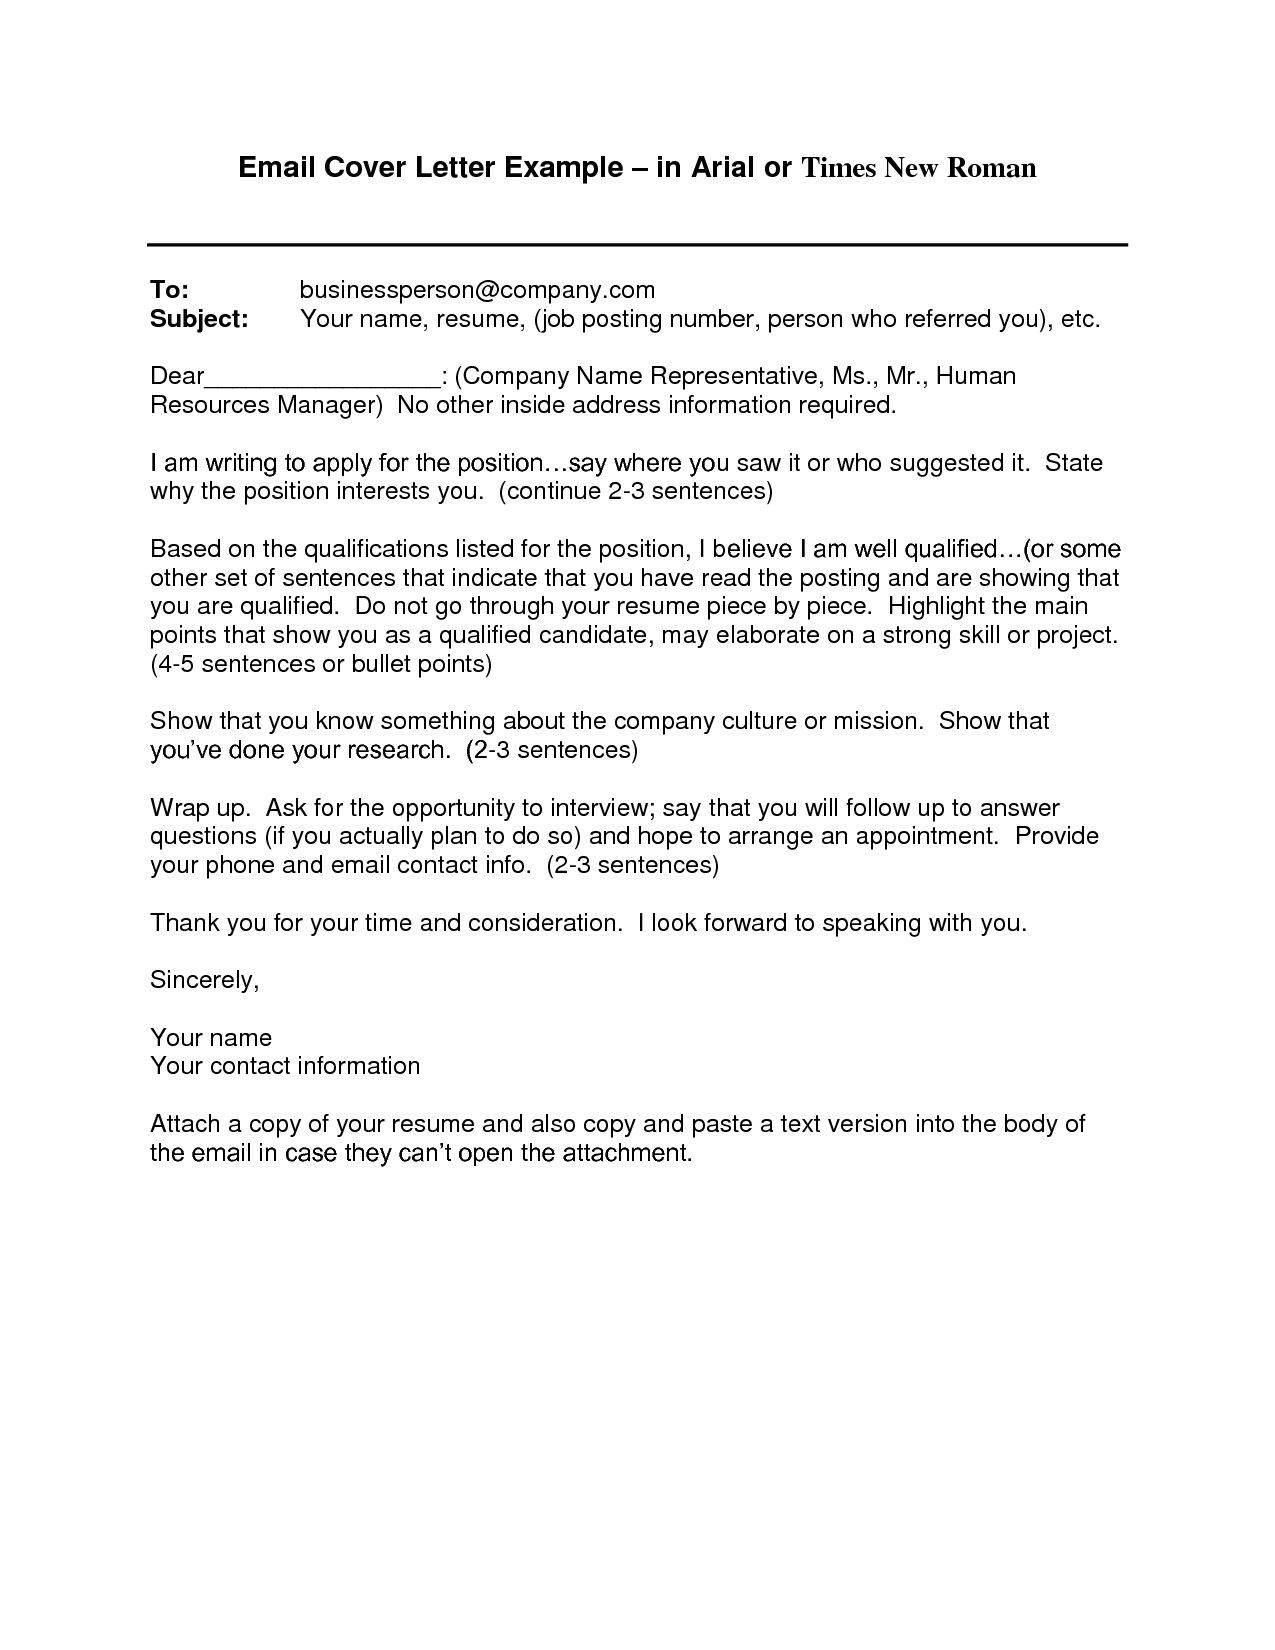 Email Cover Letter Template Resume Examples Email Cover Letter Cover Letter Resume Cover Letter Examples